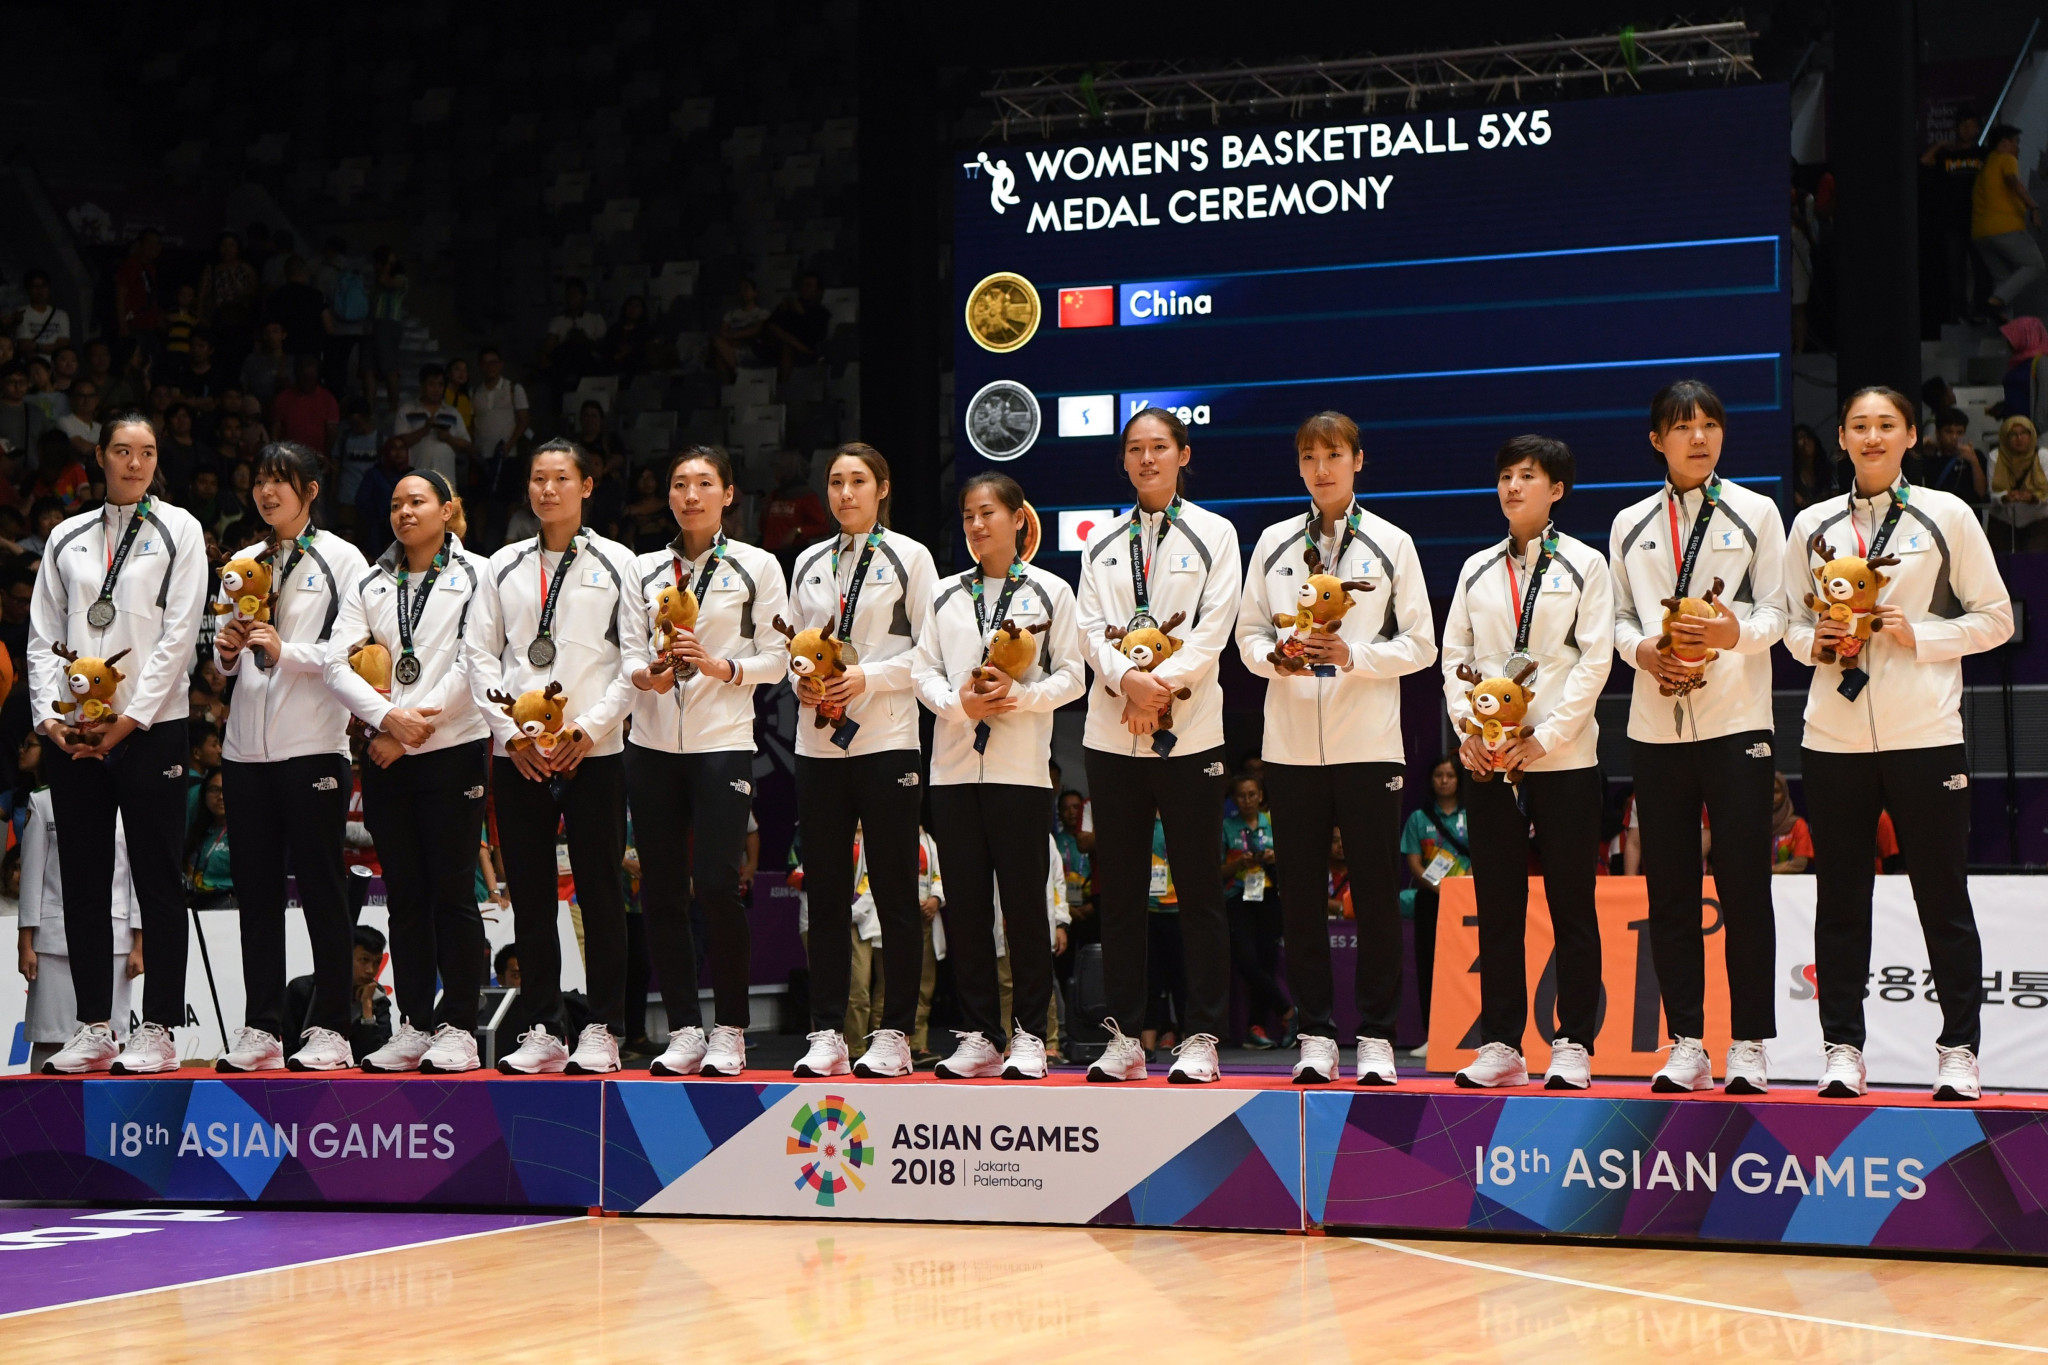 The joint Korean team won silver in the women's basketball event at the 2018 Asian Games ©Getty Images